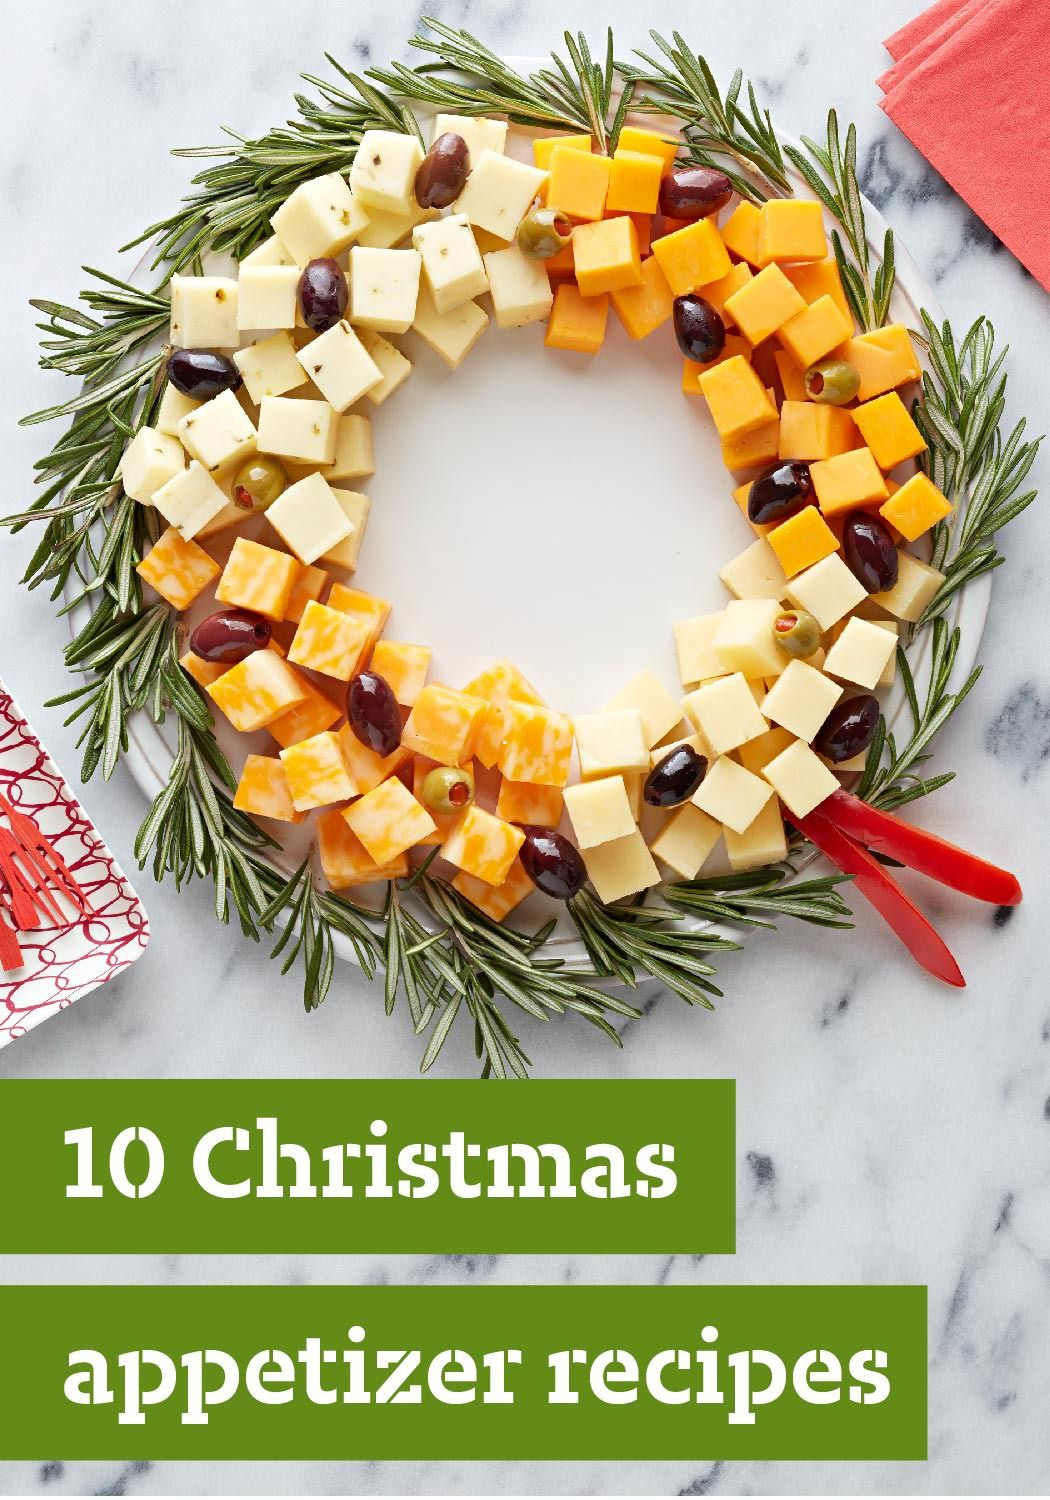 10 Christmas Appetizer Recipes Planning Your Christmas Dinner Menu Start The Festivities Christmas Recipes Appetizers Christmas Appetizers Christmas Snacks